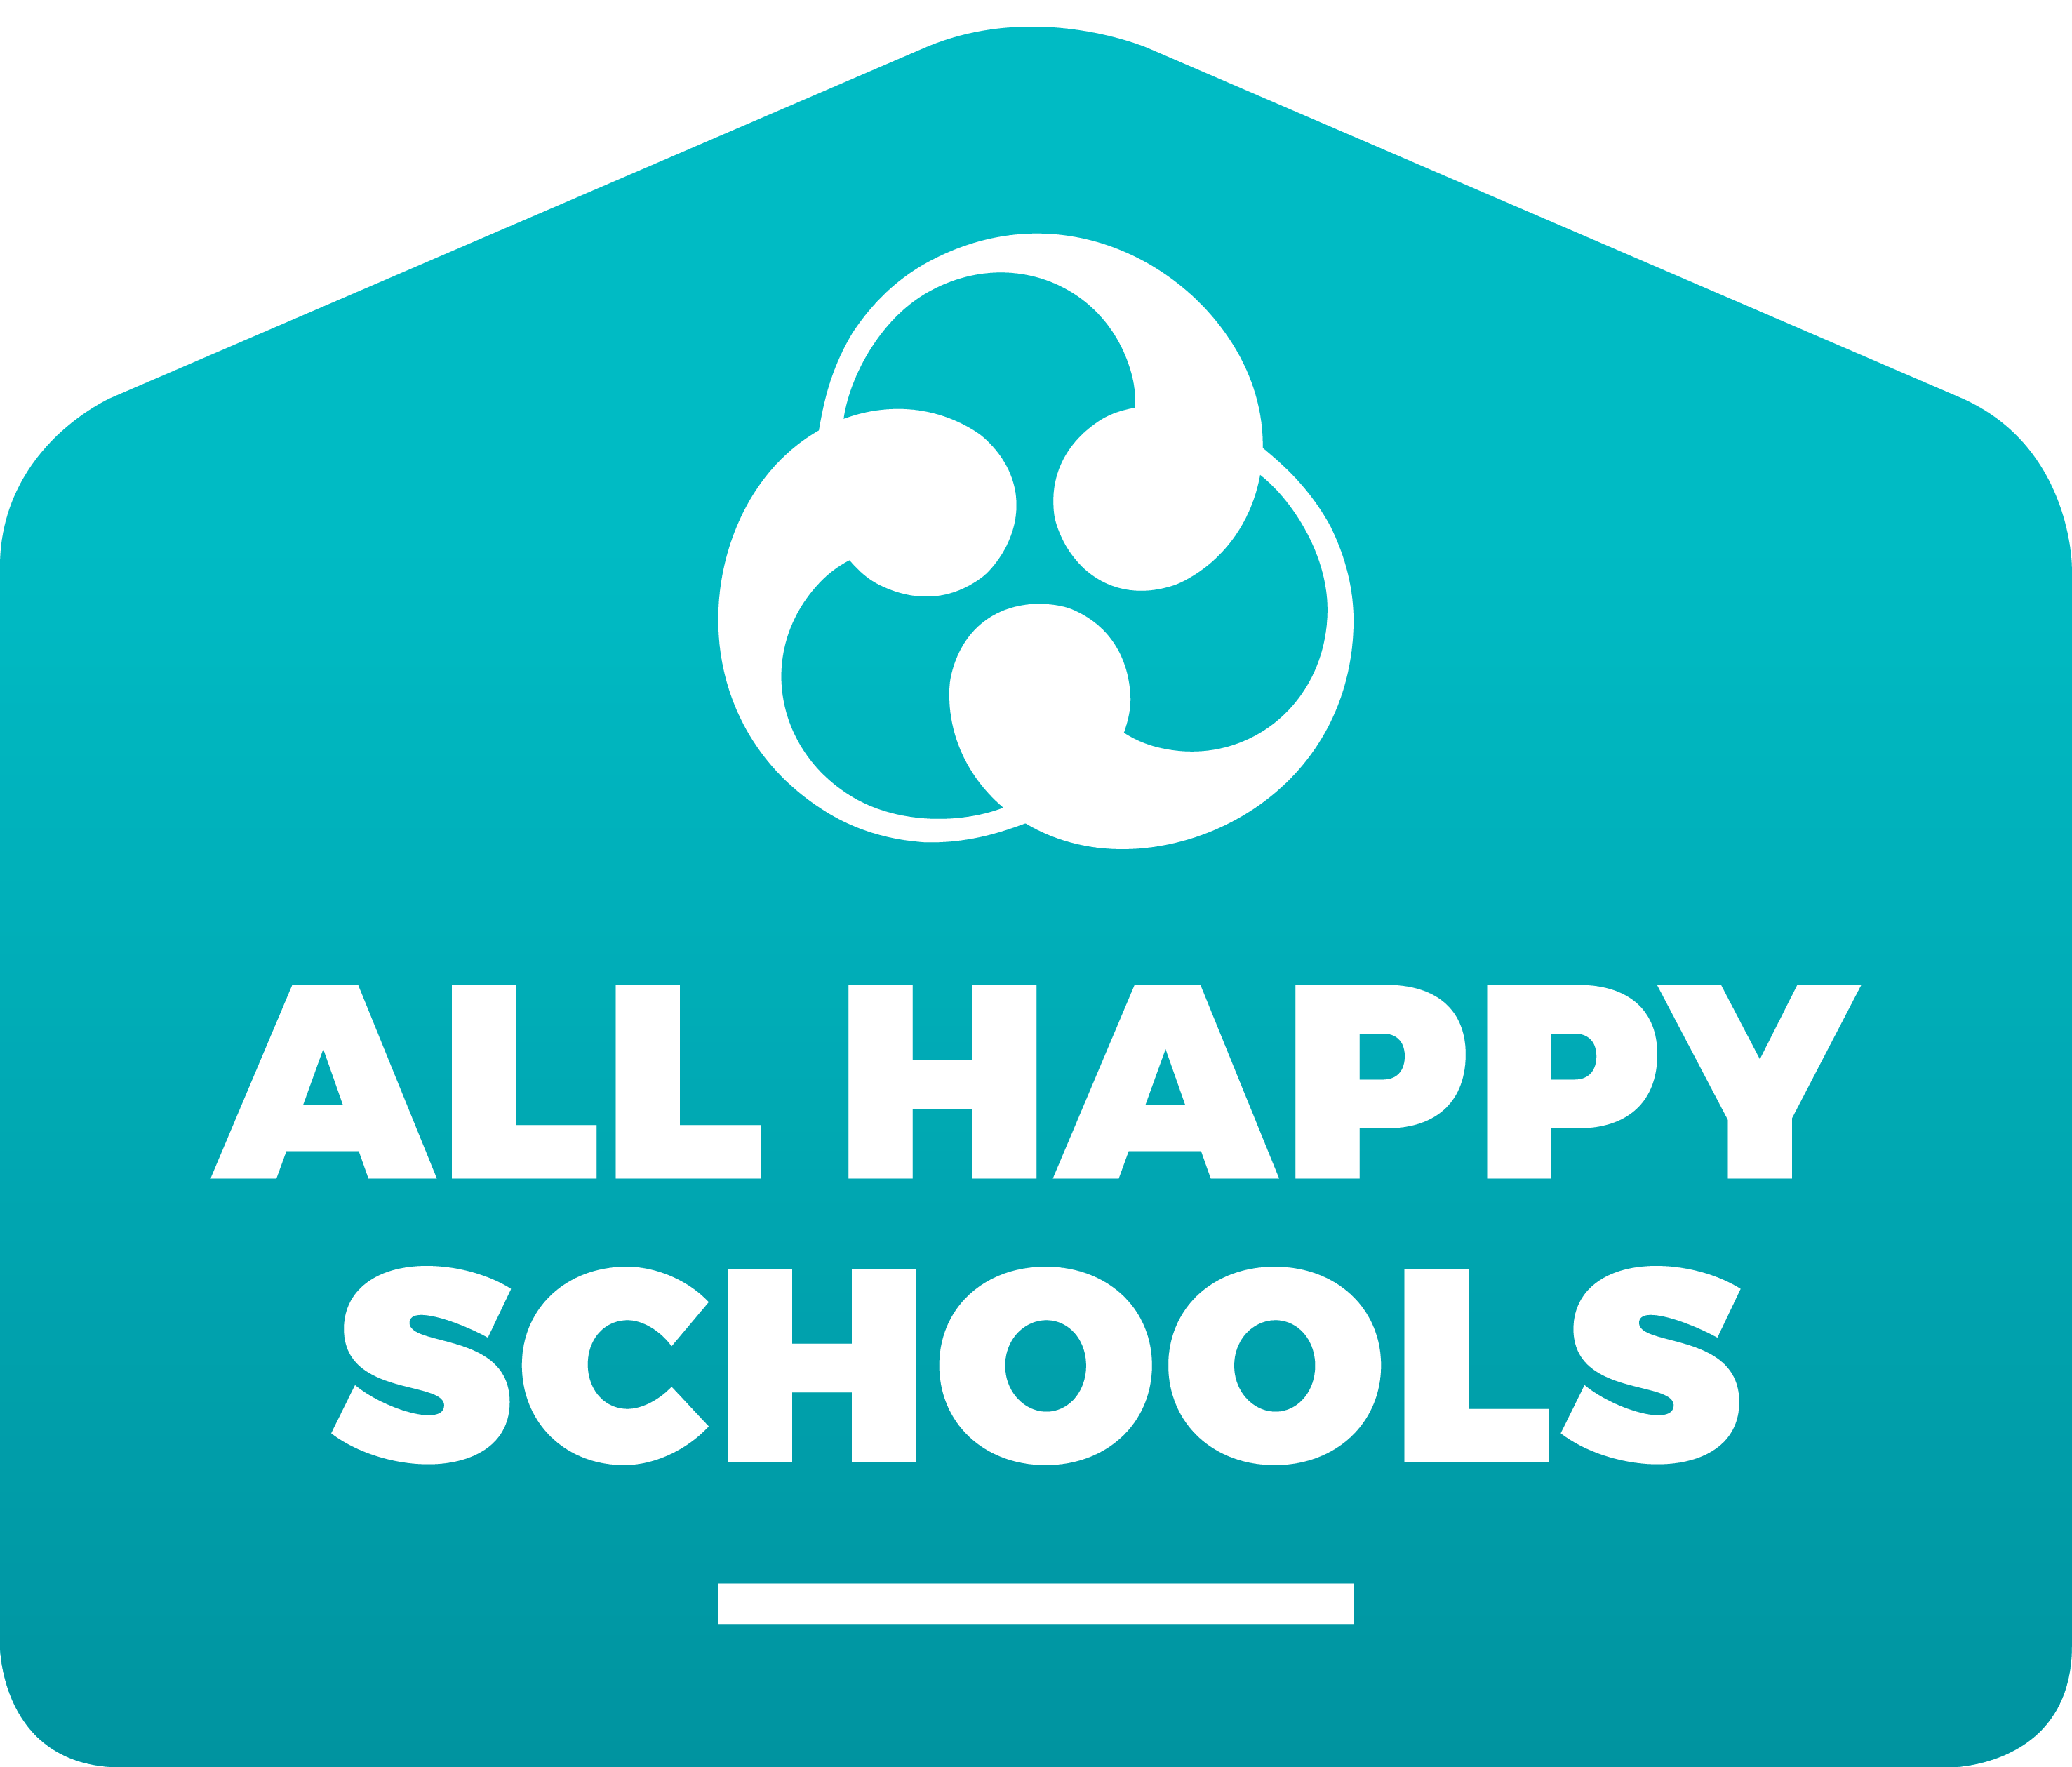 All Happy Schools